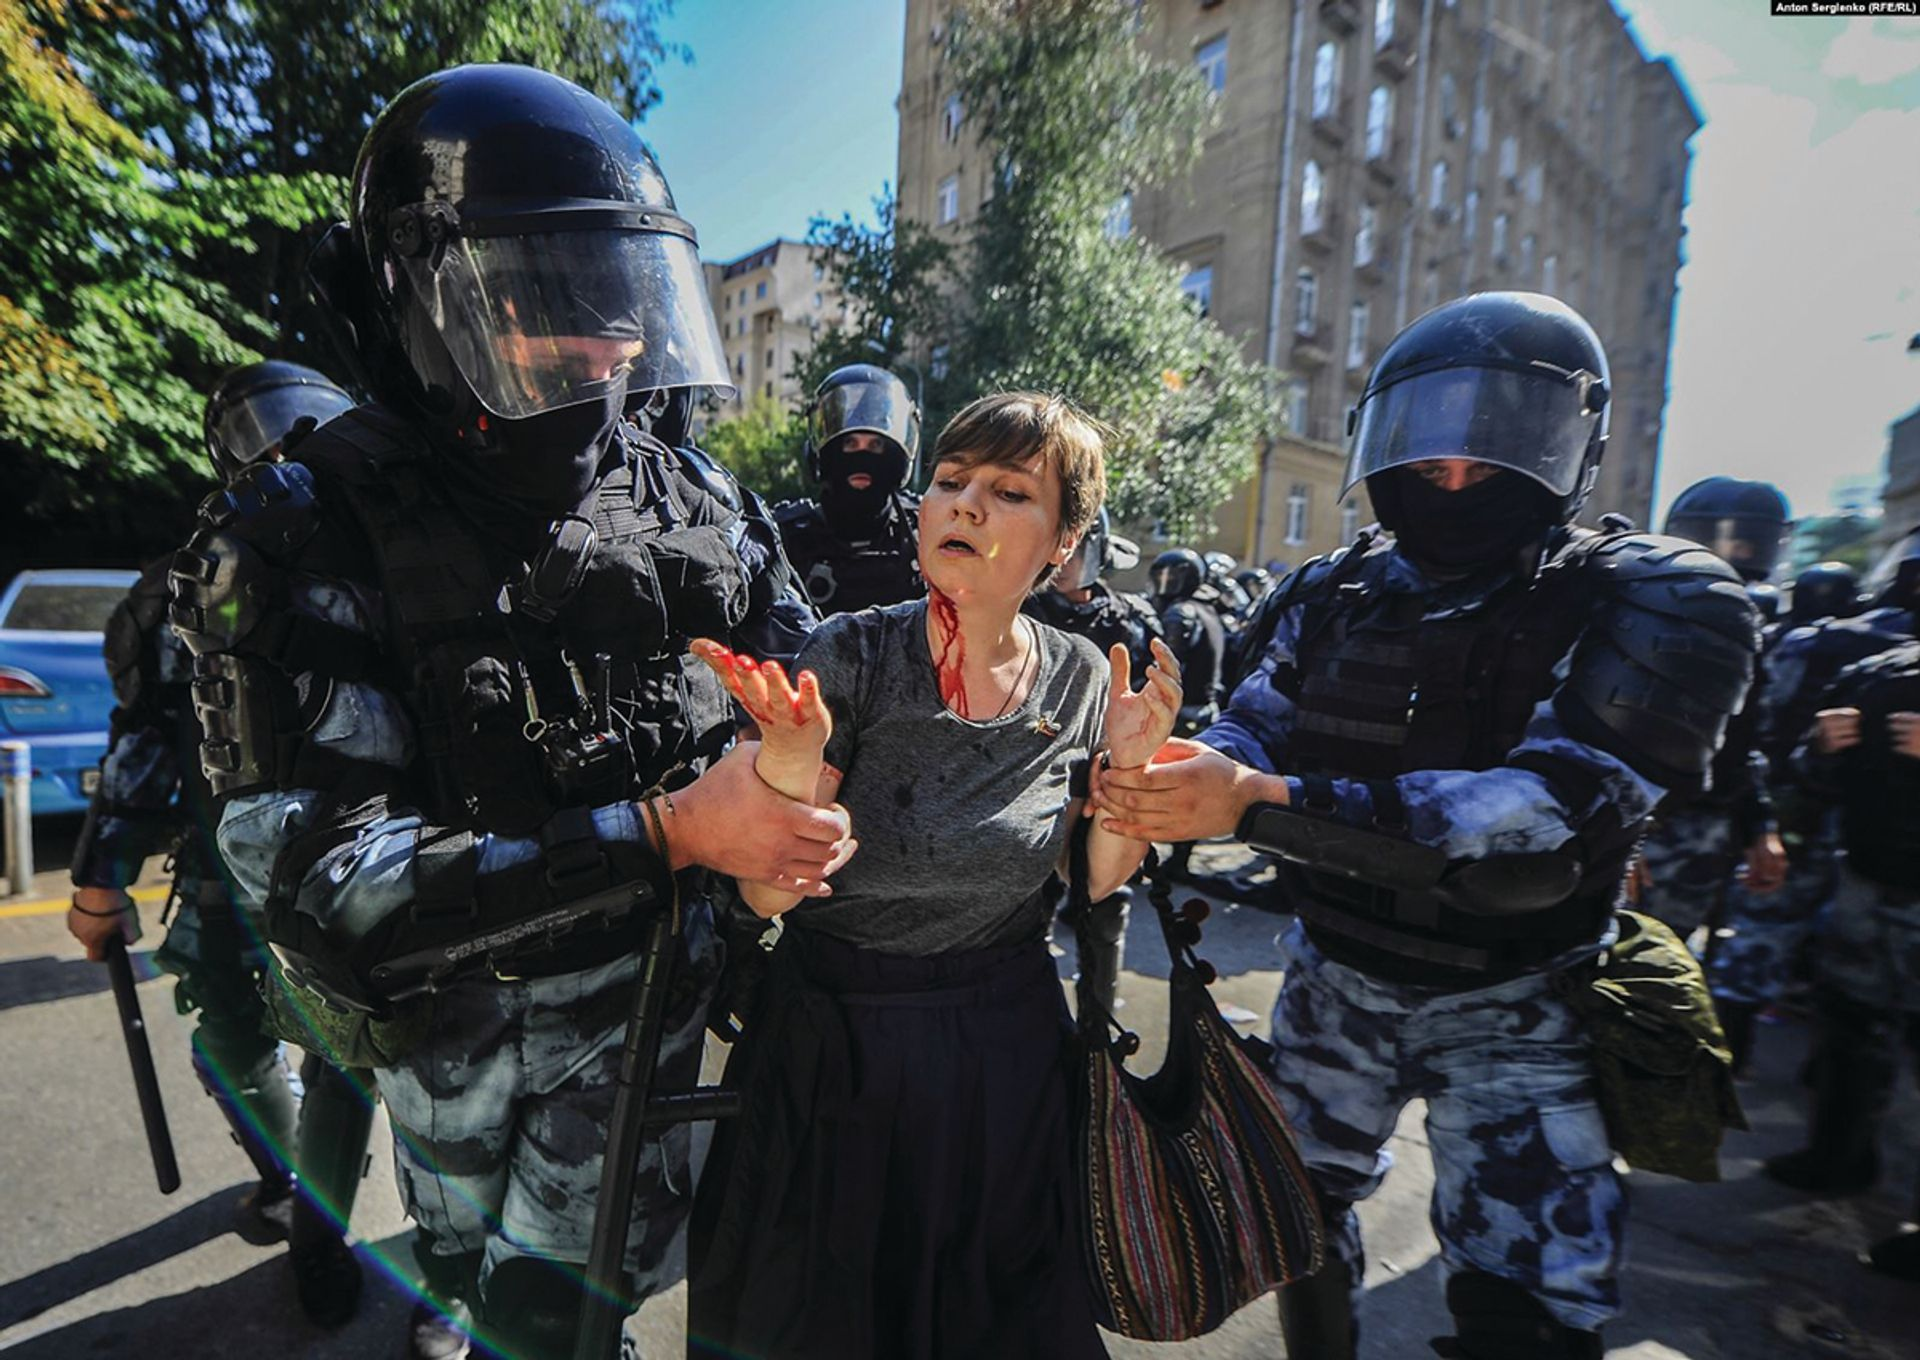 Alexsandra Parushina, an artist and district legislator, is led away from a protest after being beaten by riot police ©Anton Sergienko